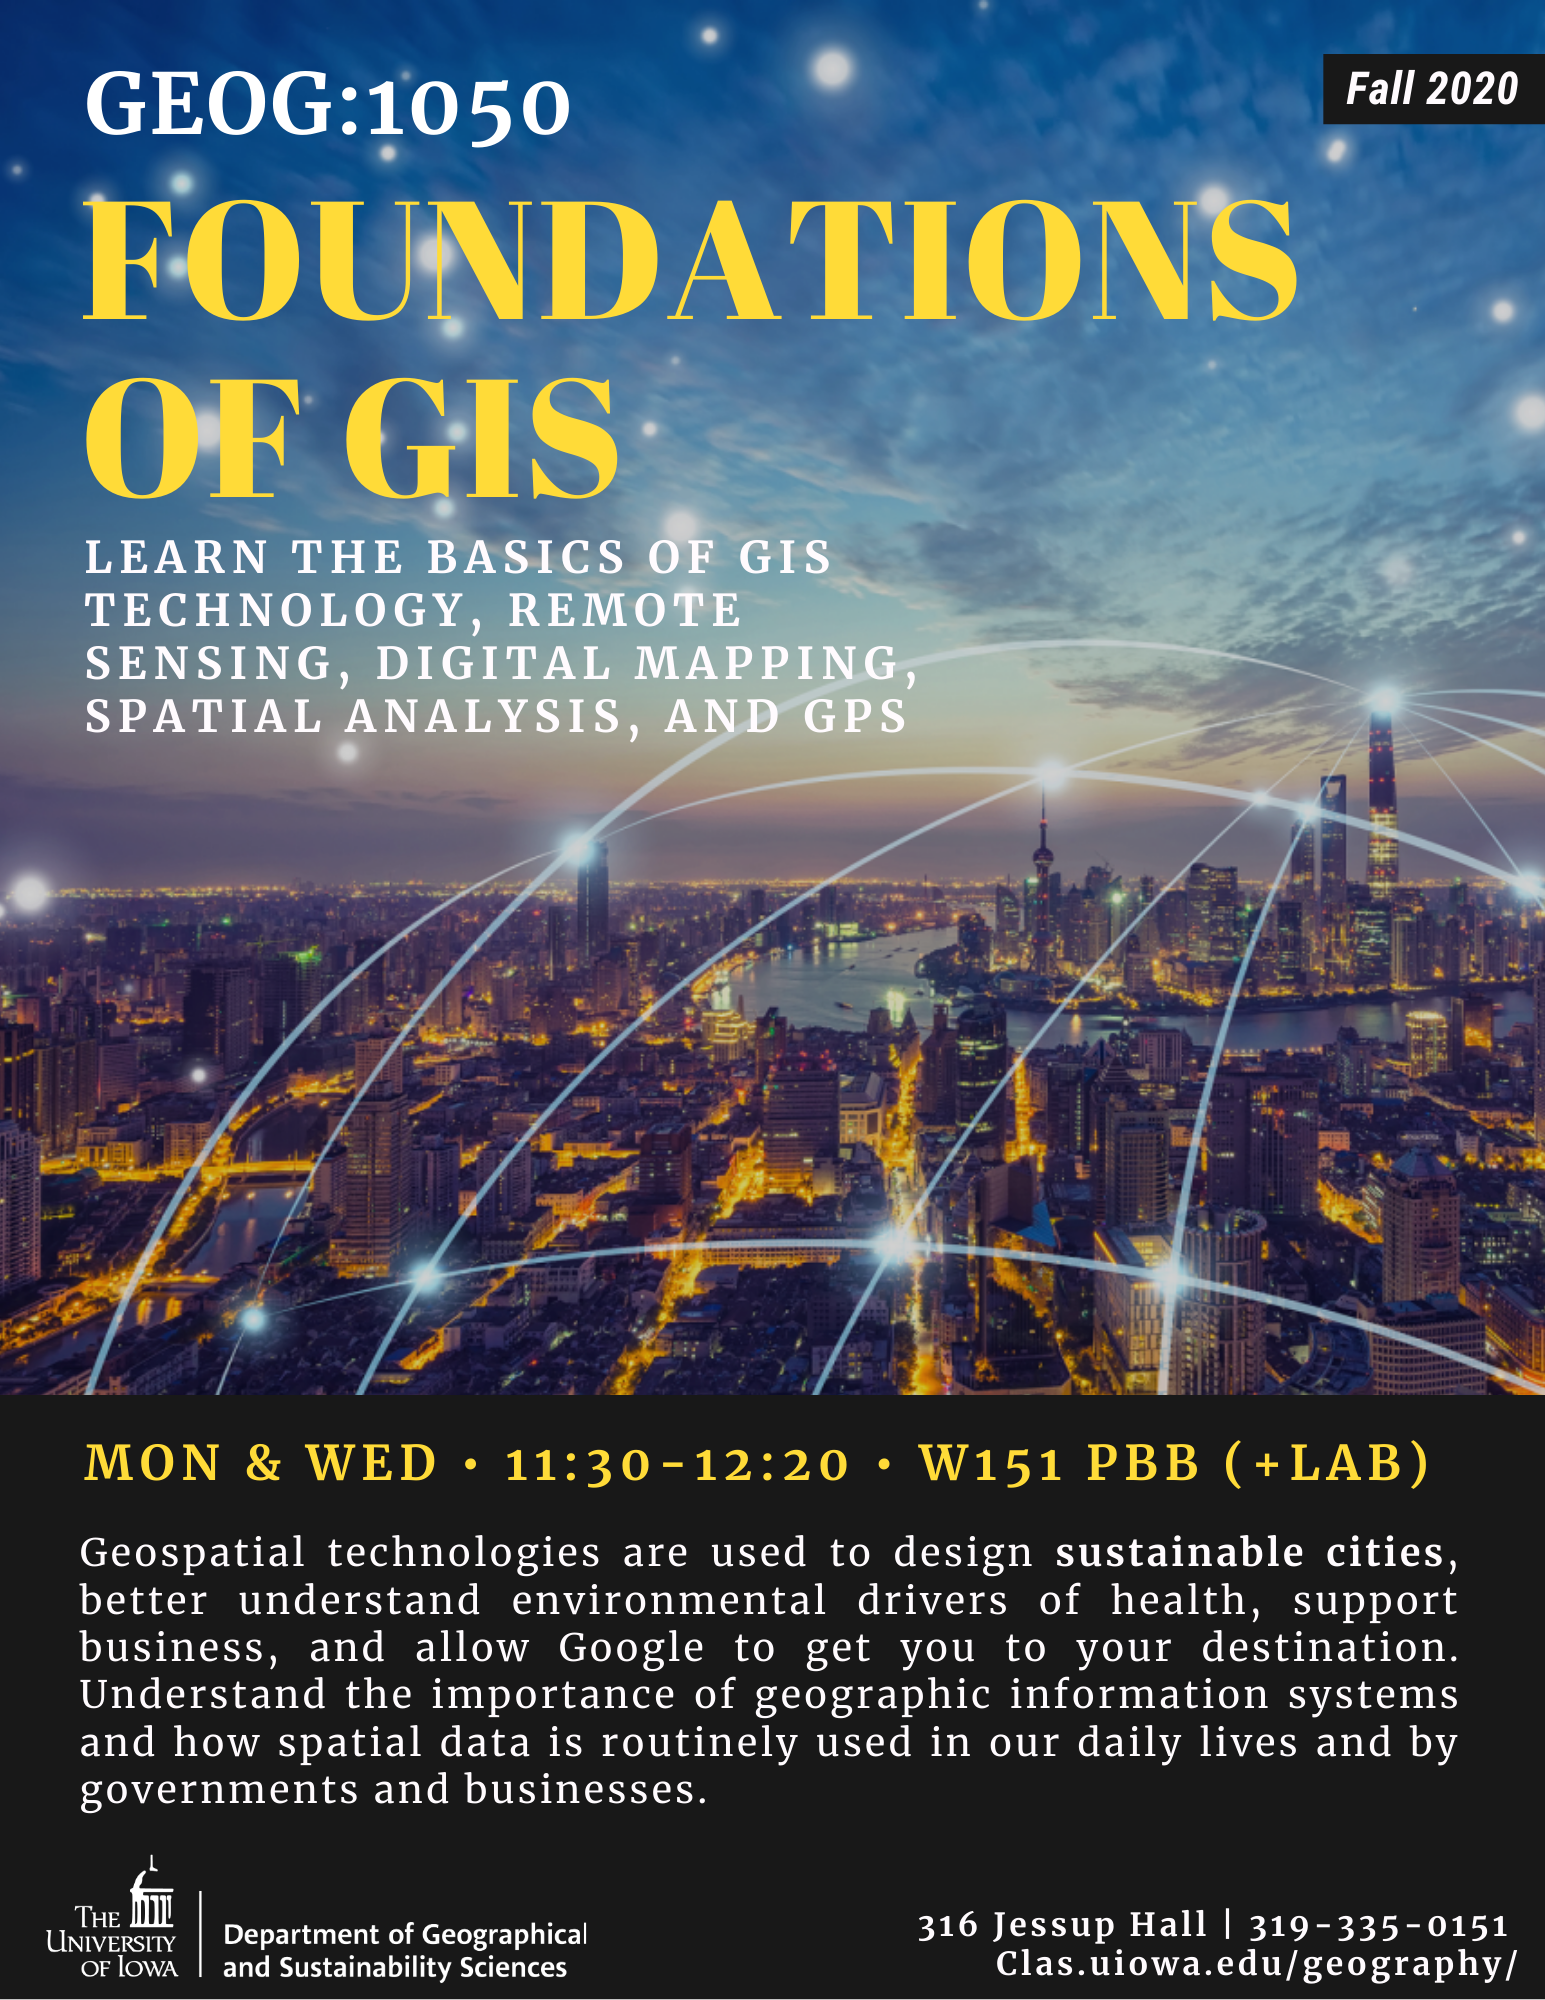 foundations of GIS